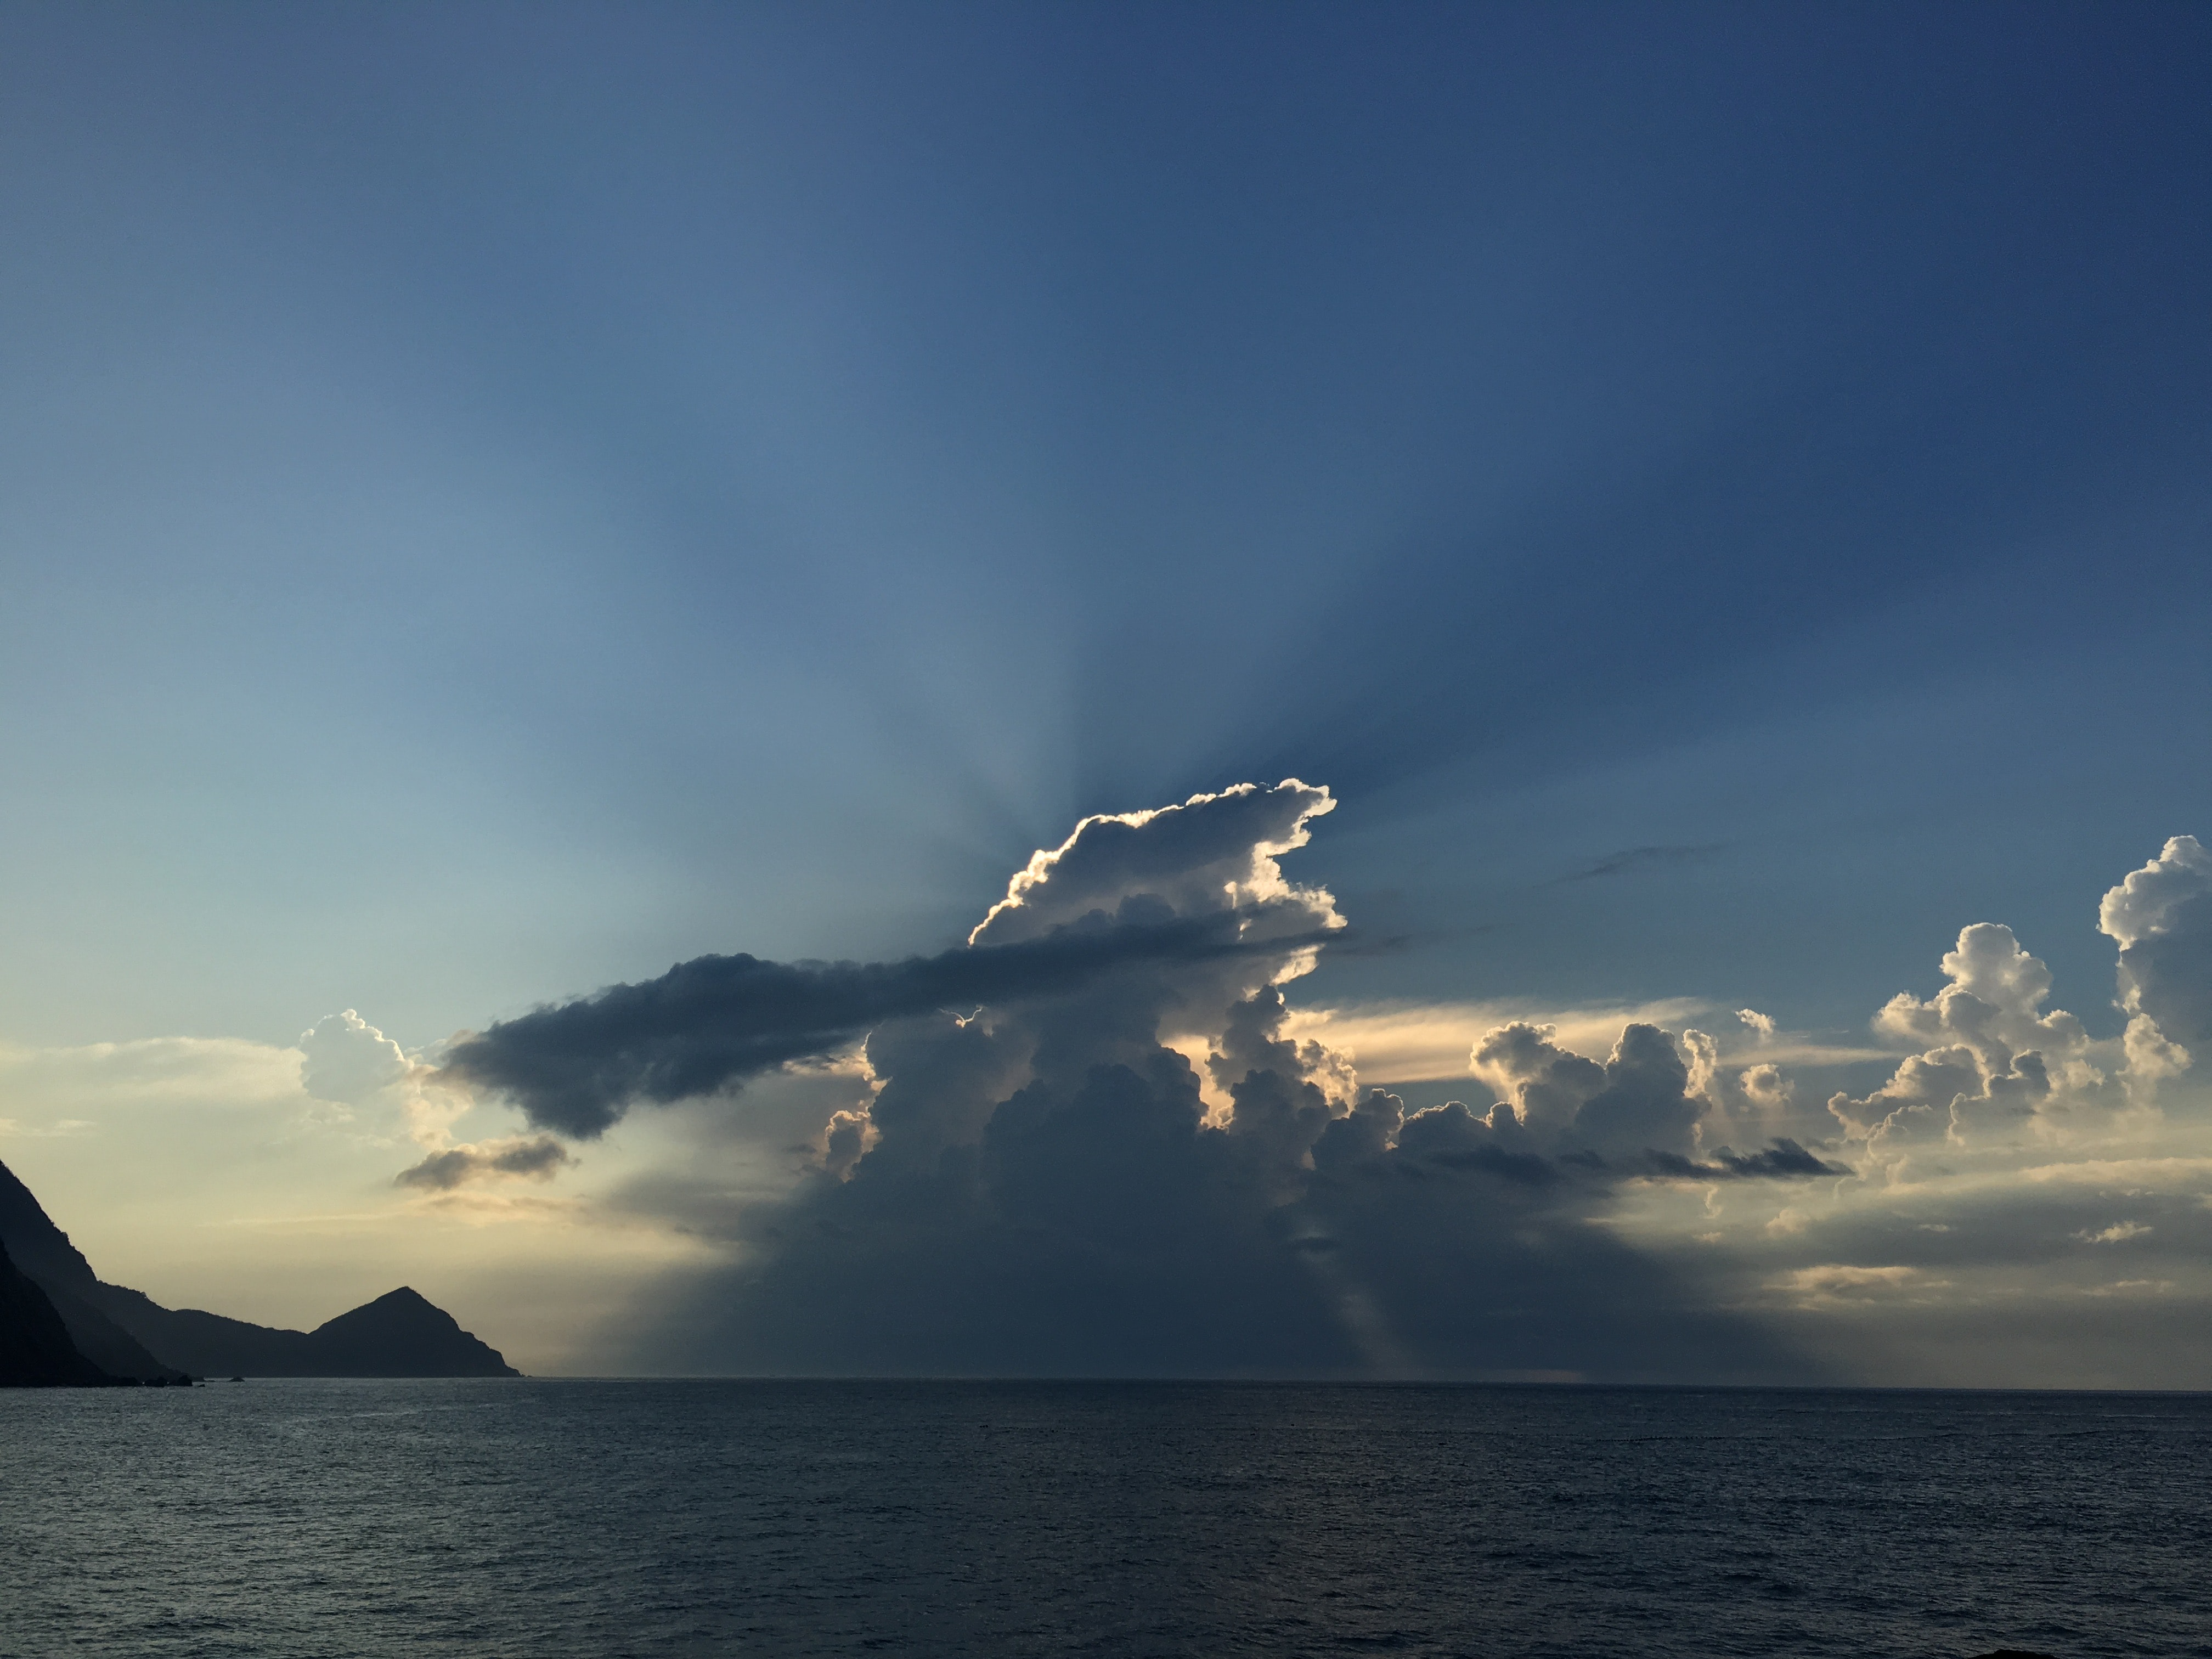 panoramic photo of sea with clouds covering the sun during daytime